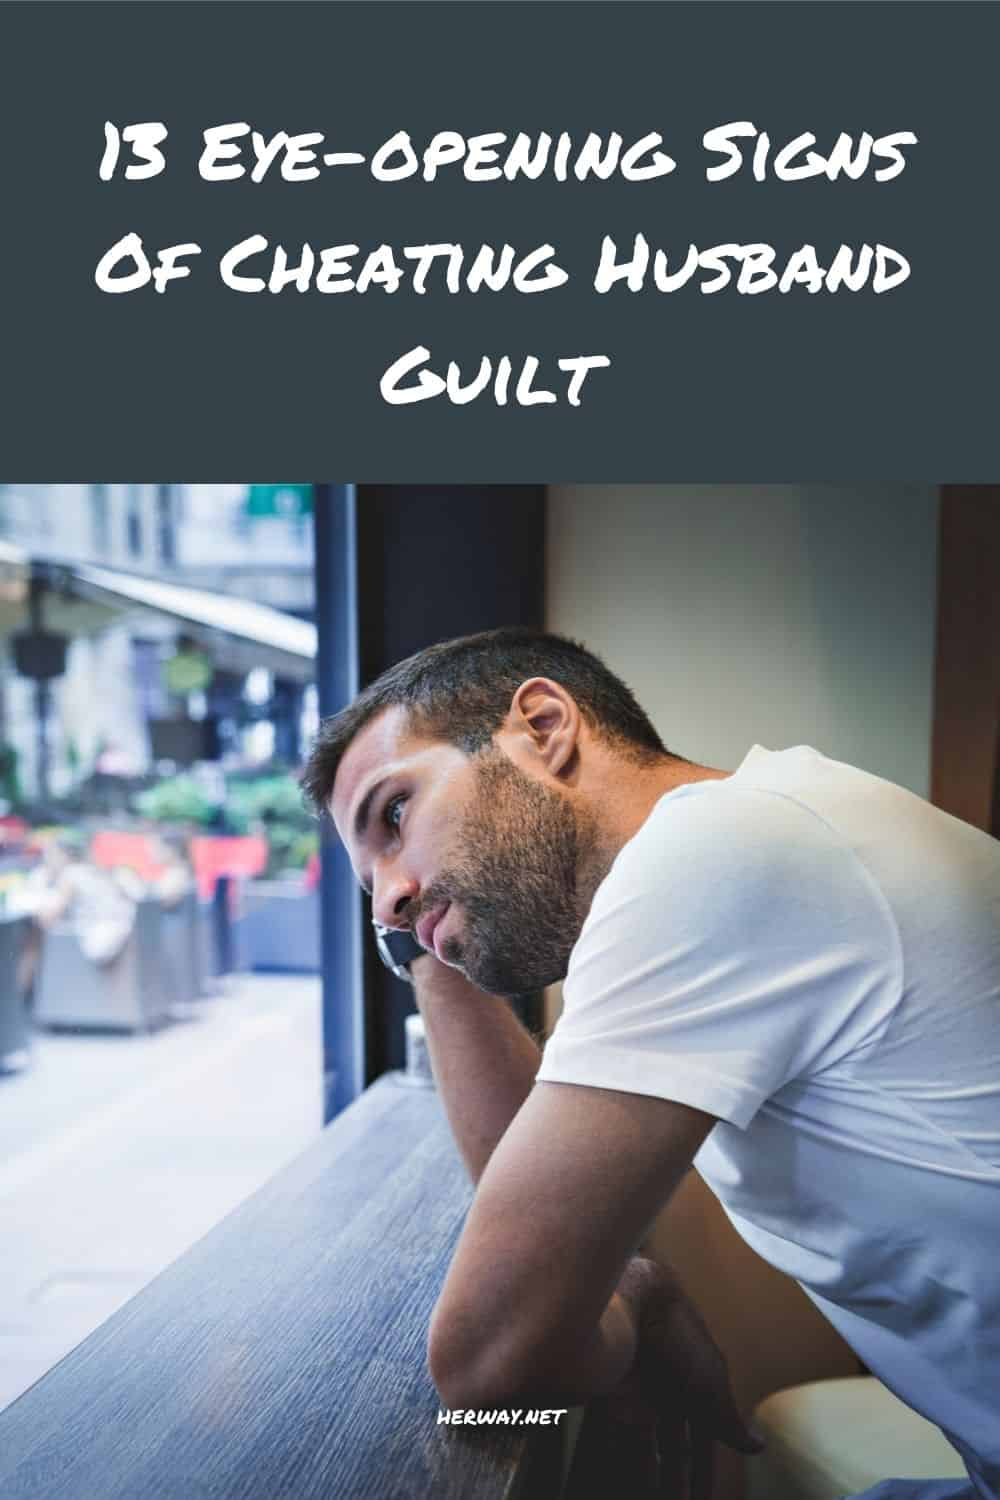 13 Eye-opening Signs Of Cheating Husband Guilt